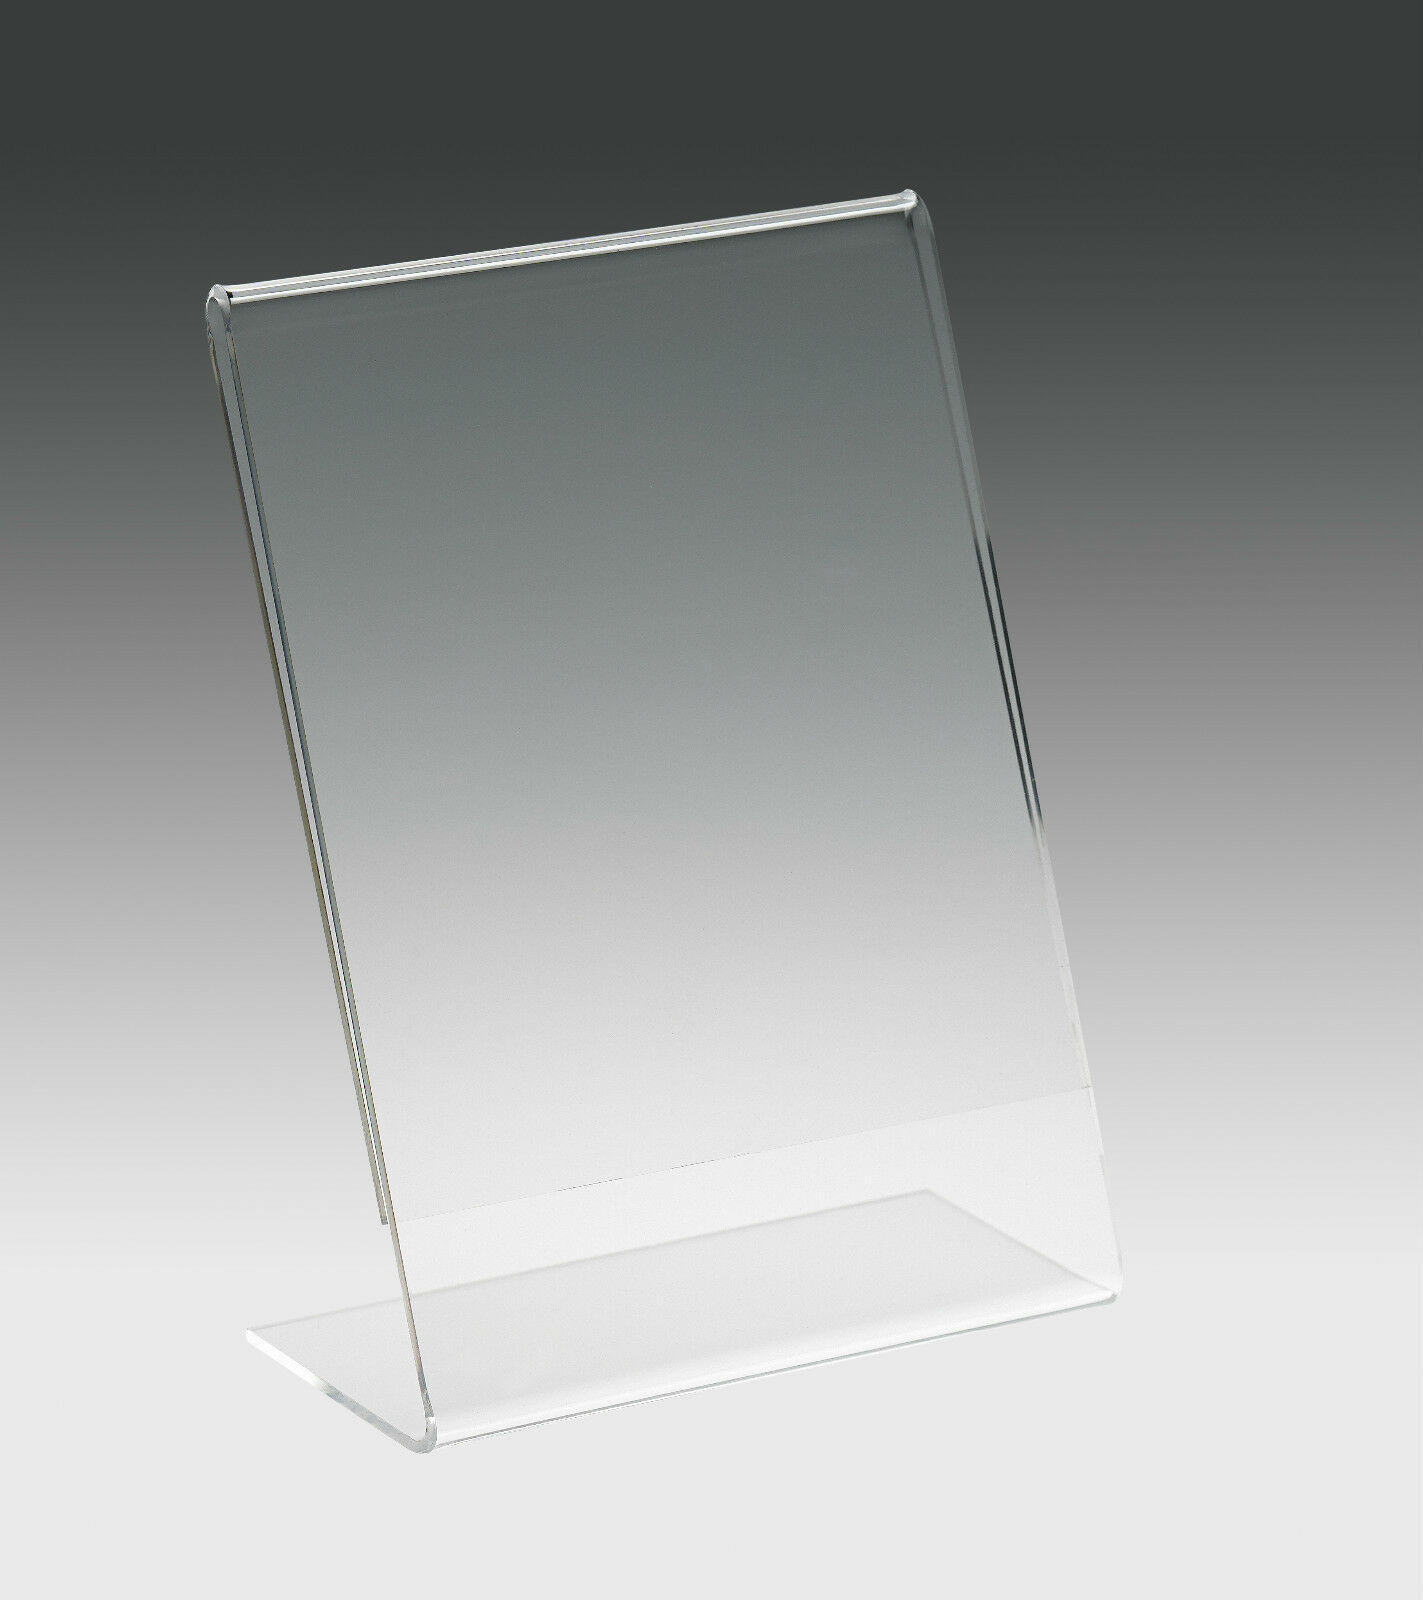 details about a4 a5 a6 a7 a8 a9 acrylic menu holder perspex poster display stand sign holder